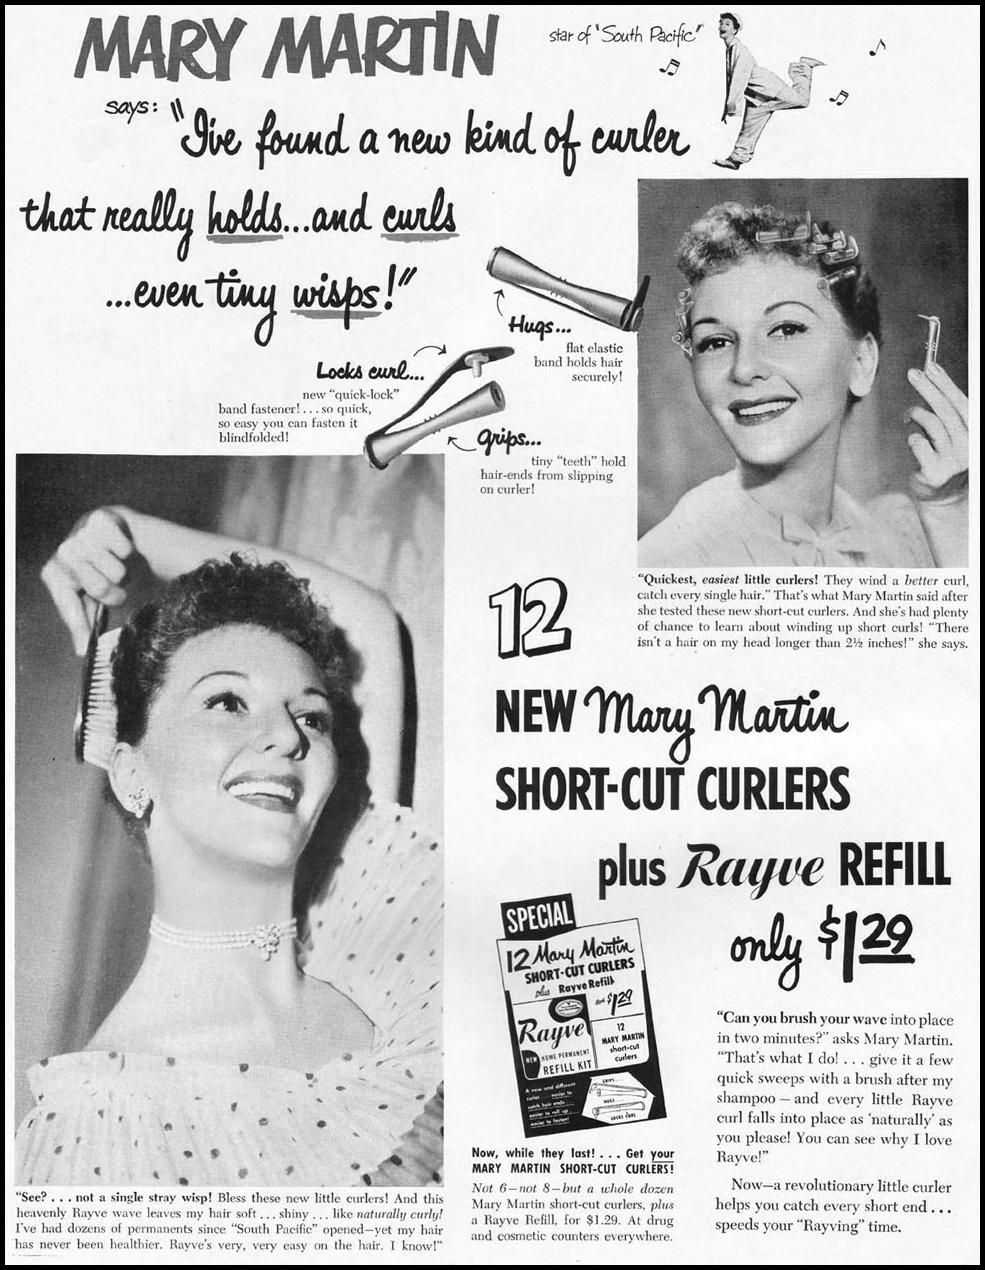 RAYVE HAIR CURLERS LADIES' HOME JOURNAL 11/01/1950 p. 176